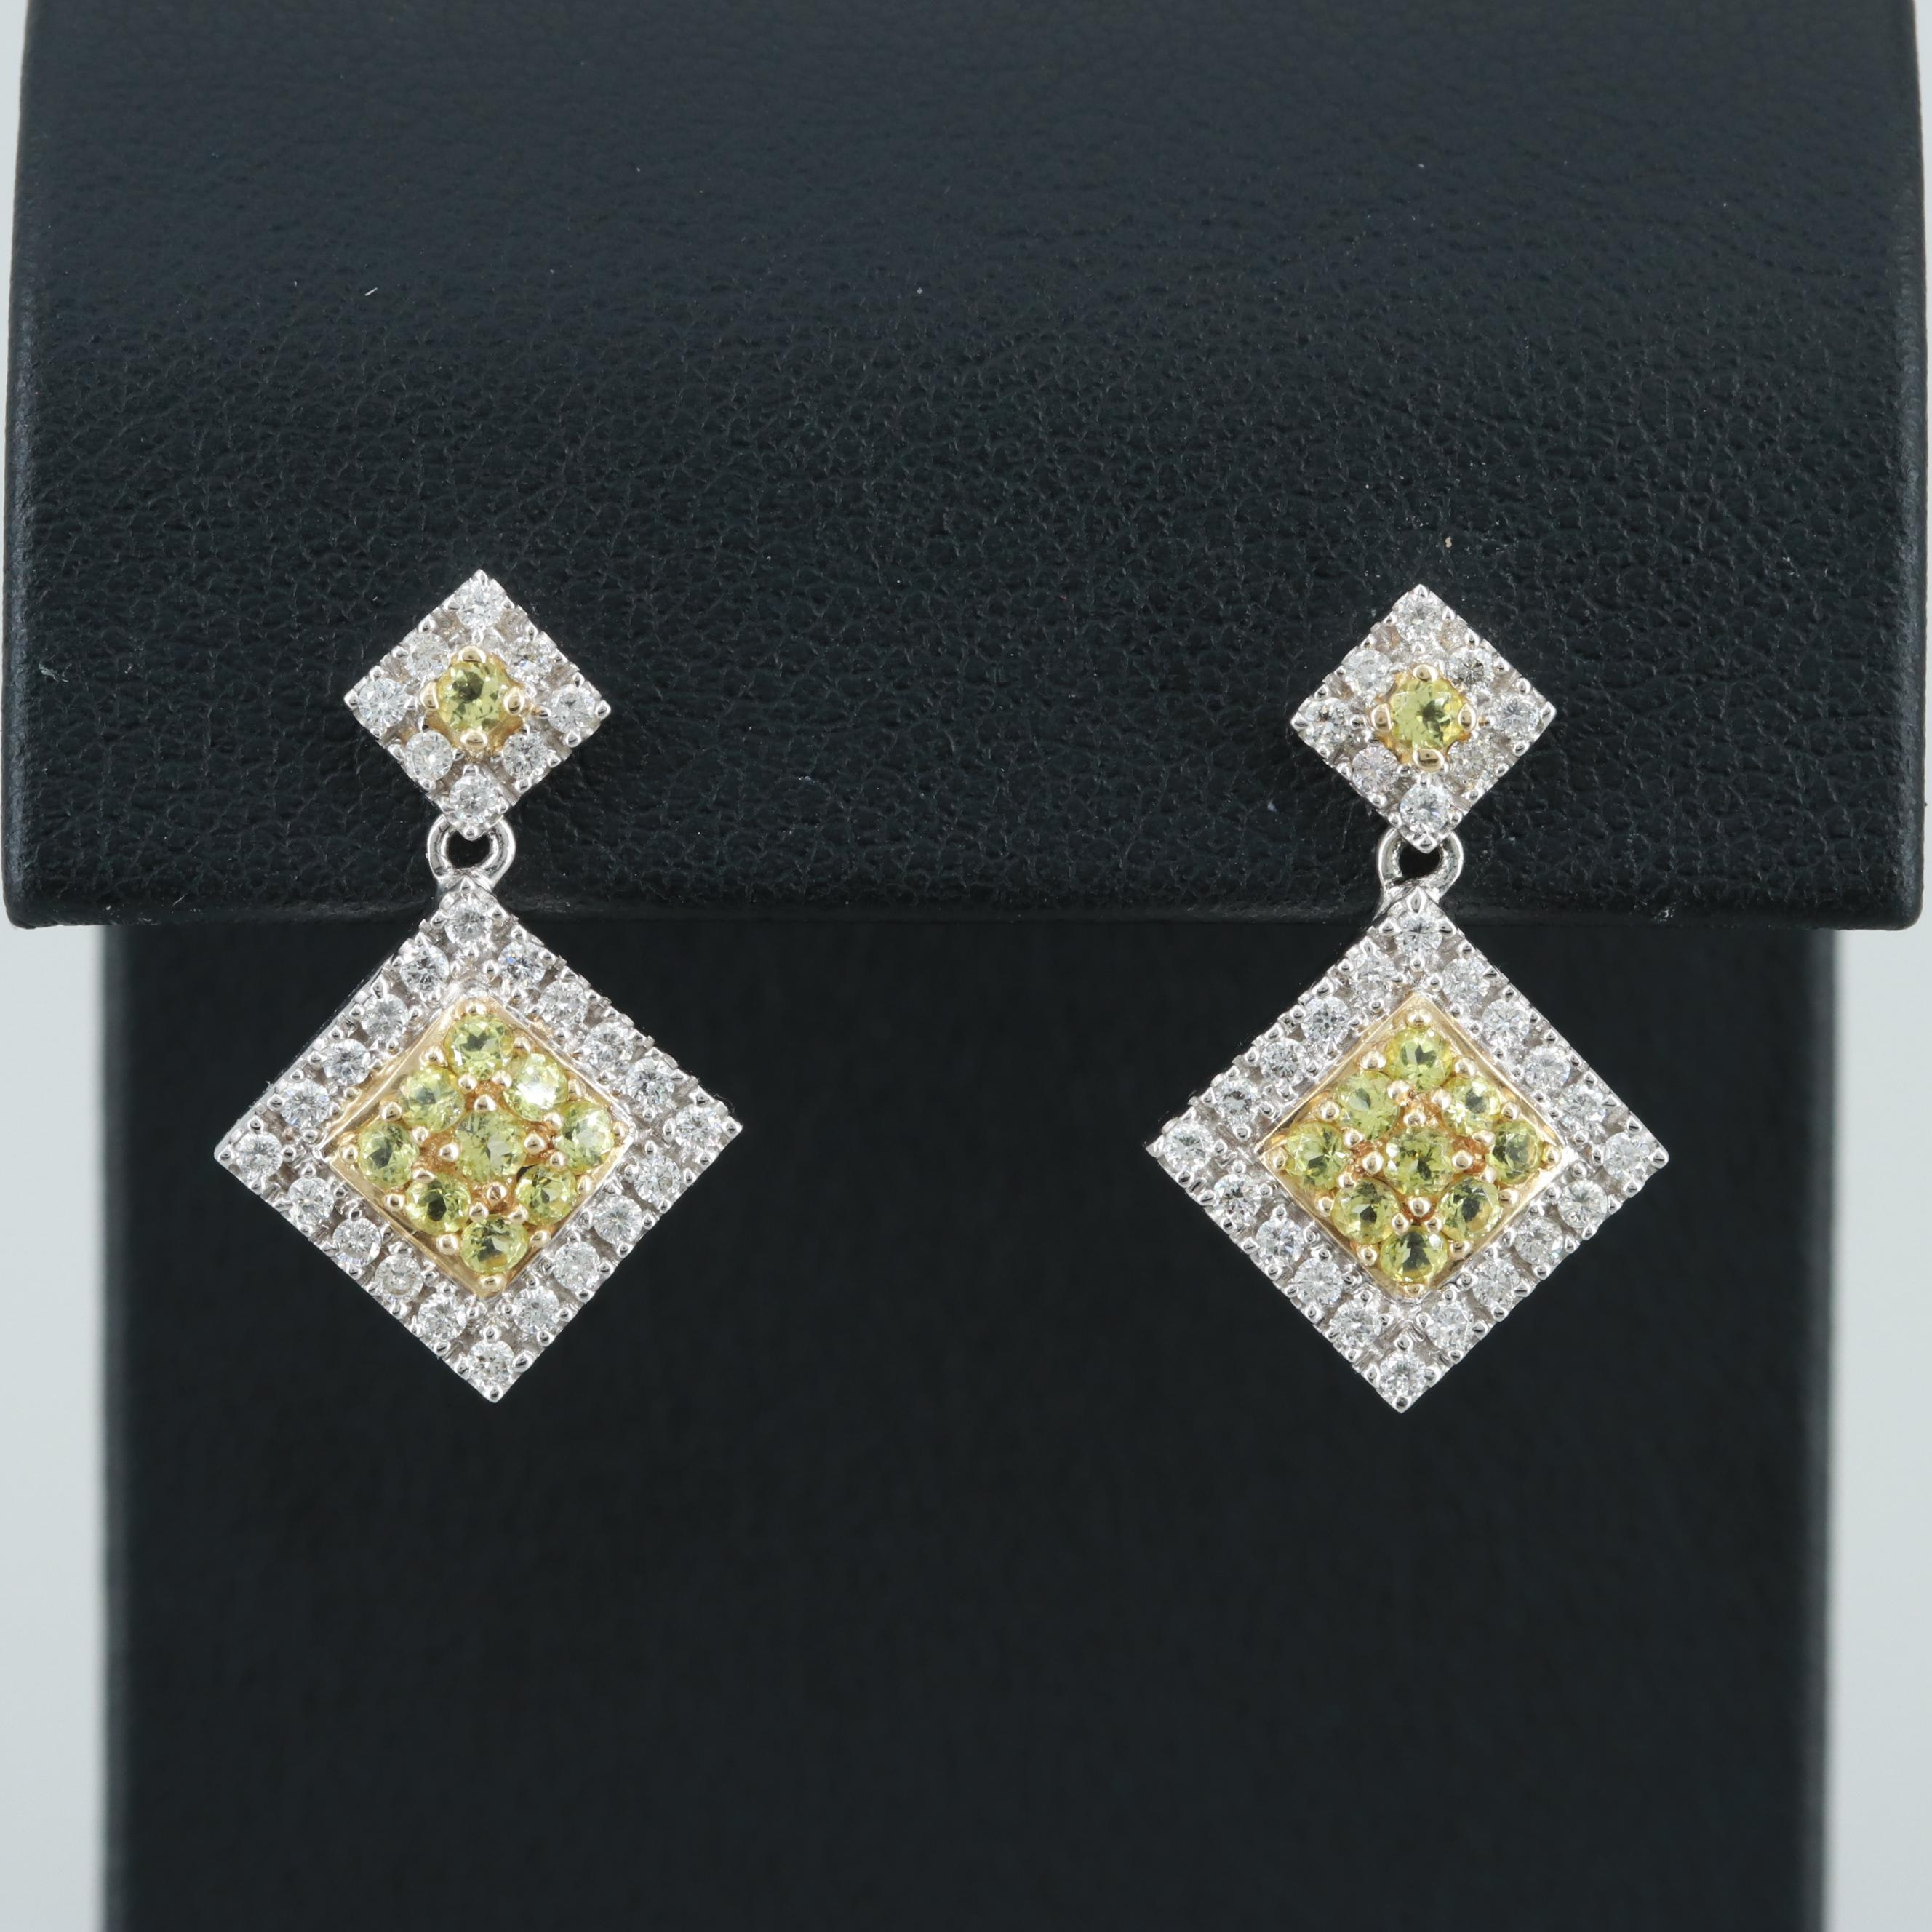 14K White Gold Apatite and Diamond Earrings with Yellow Gold Accents